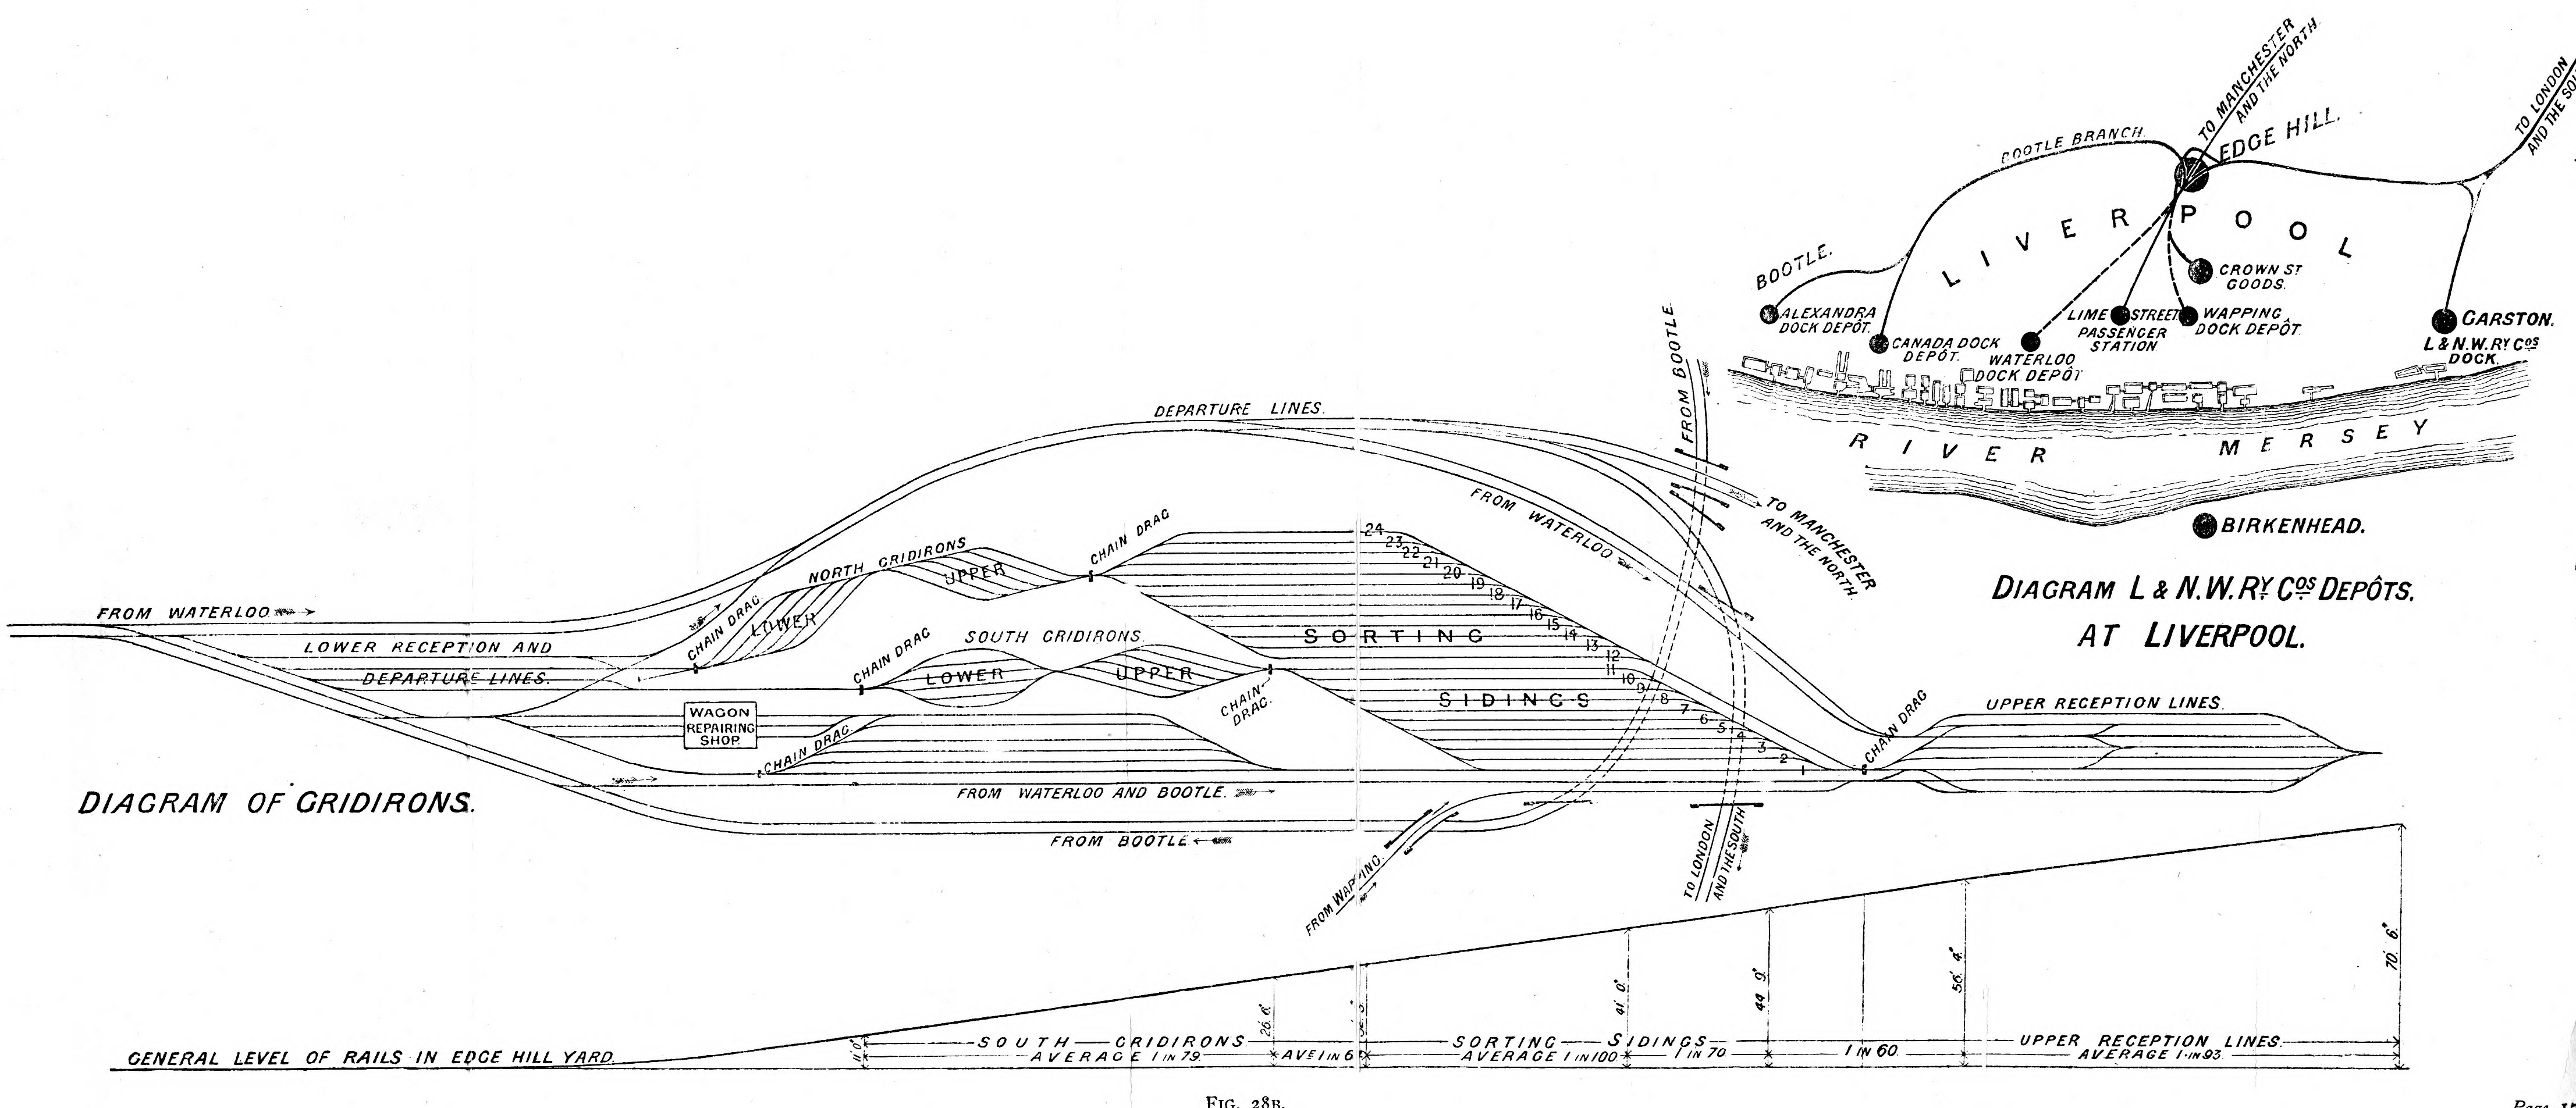 File Diagram Of Gridirons And Levels Of Rails In Edge Hill